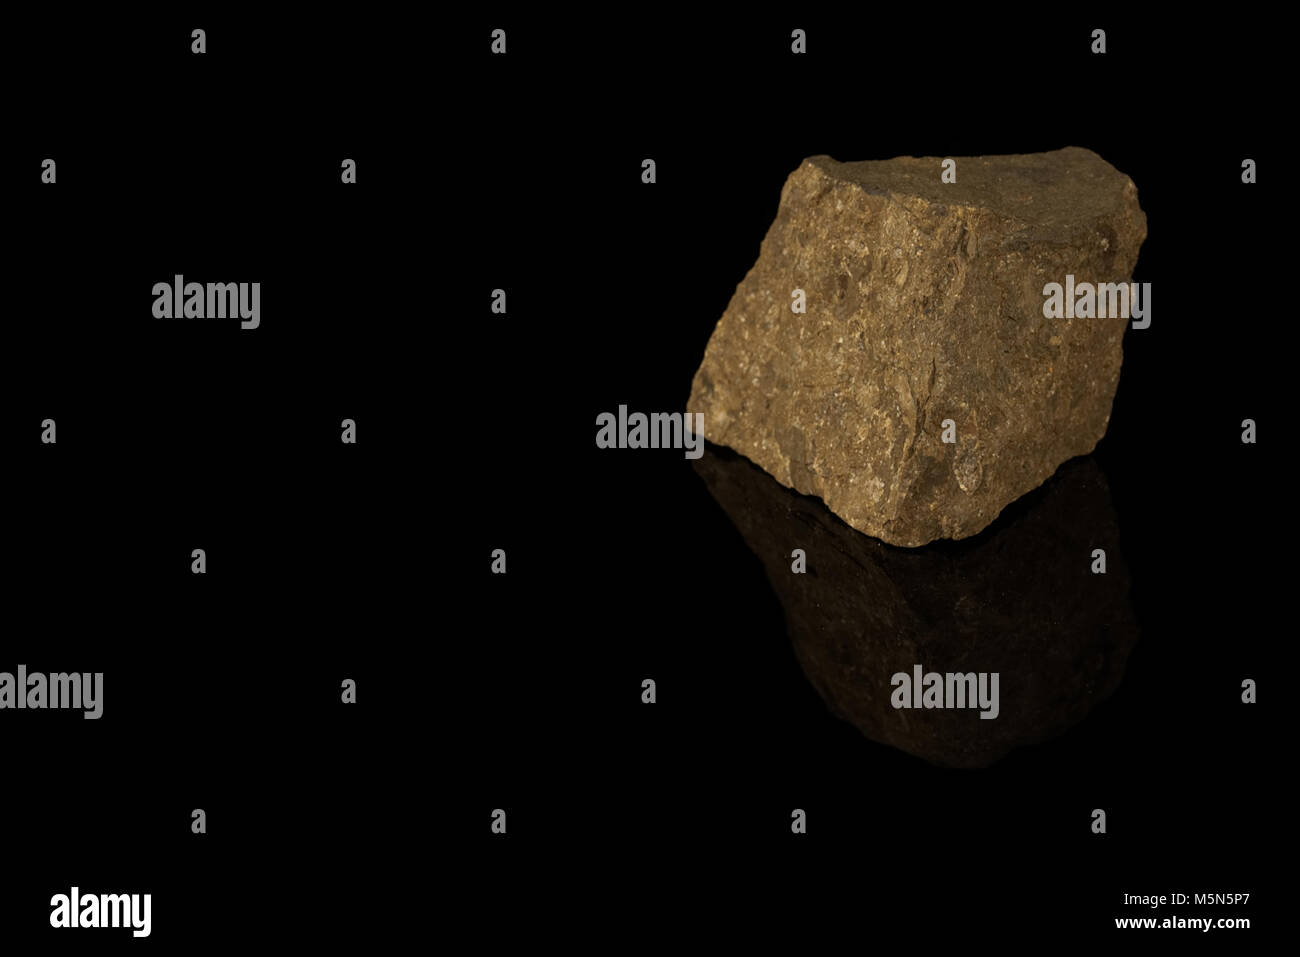 Manganese ore mineral isolated on a black background. Pyrolusite. Rocks and minerals - Stock Image